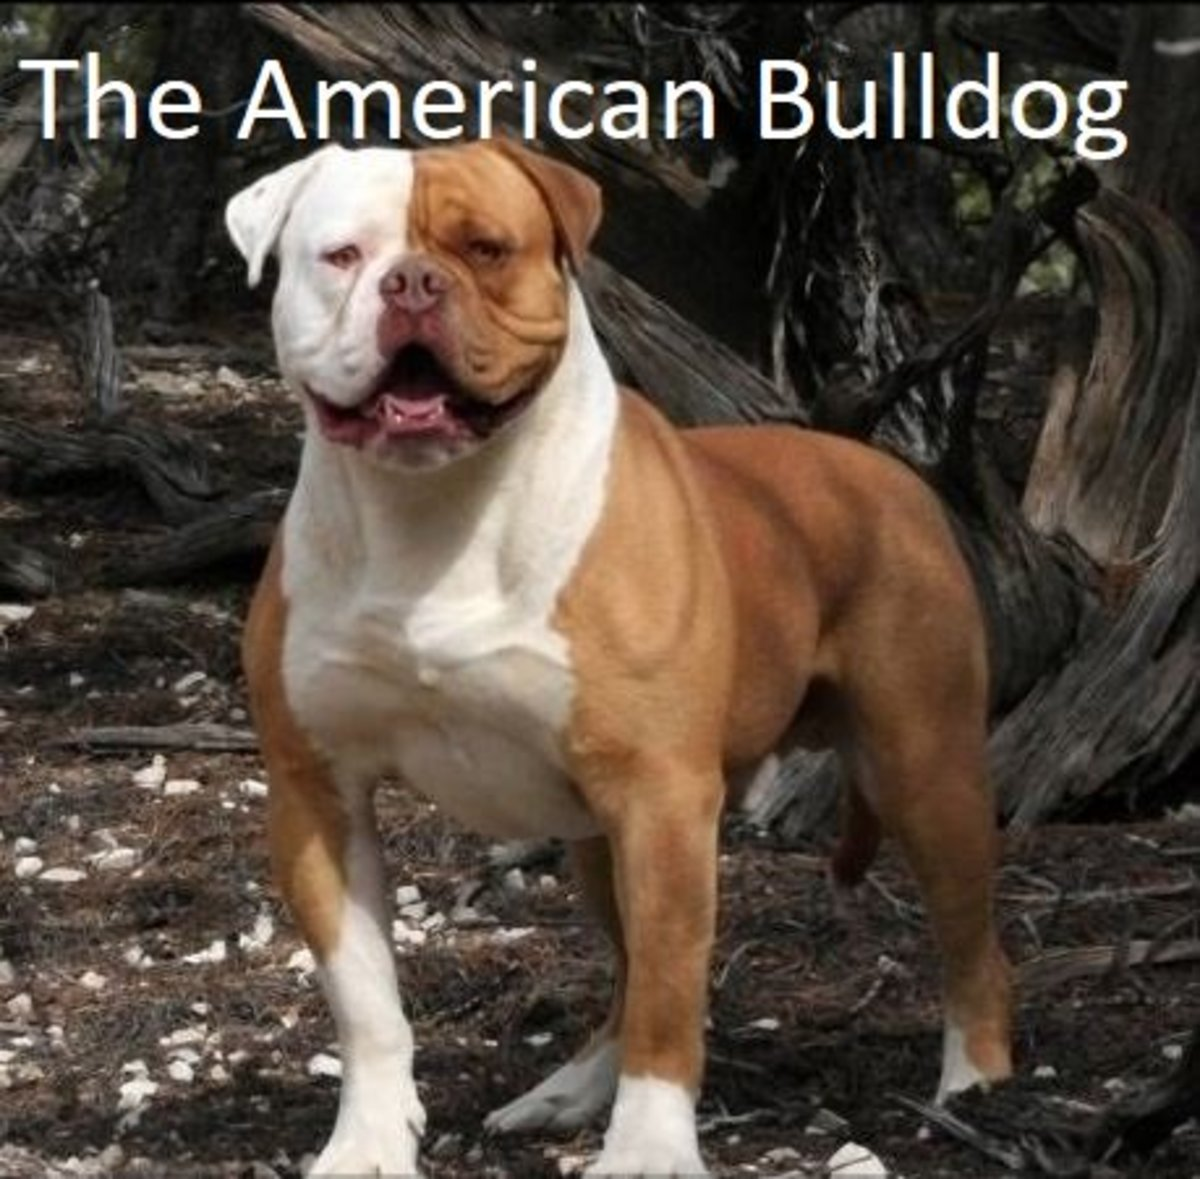 Amerikansk Bulldog User:Elad1987 - Own work CC BY-SA 3.0